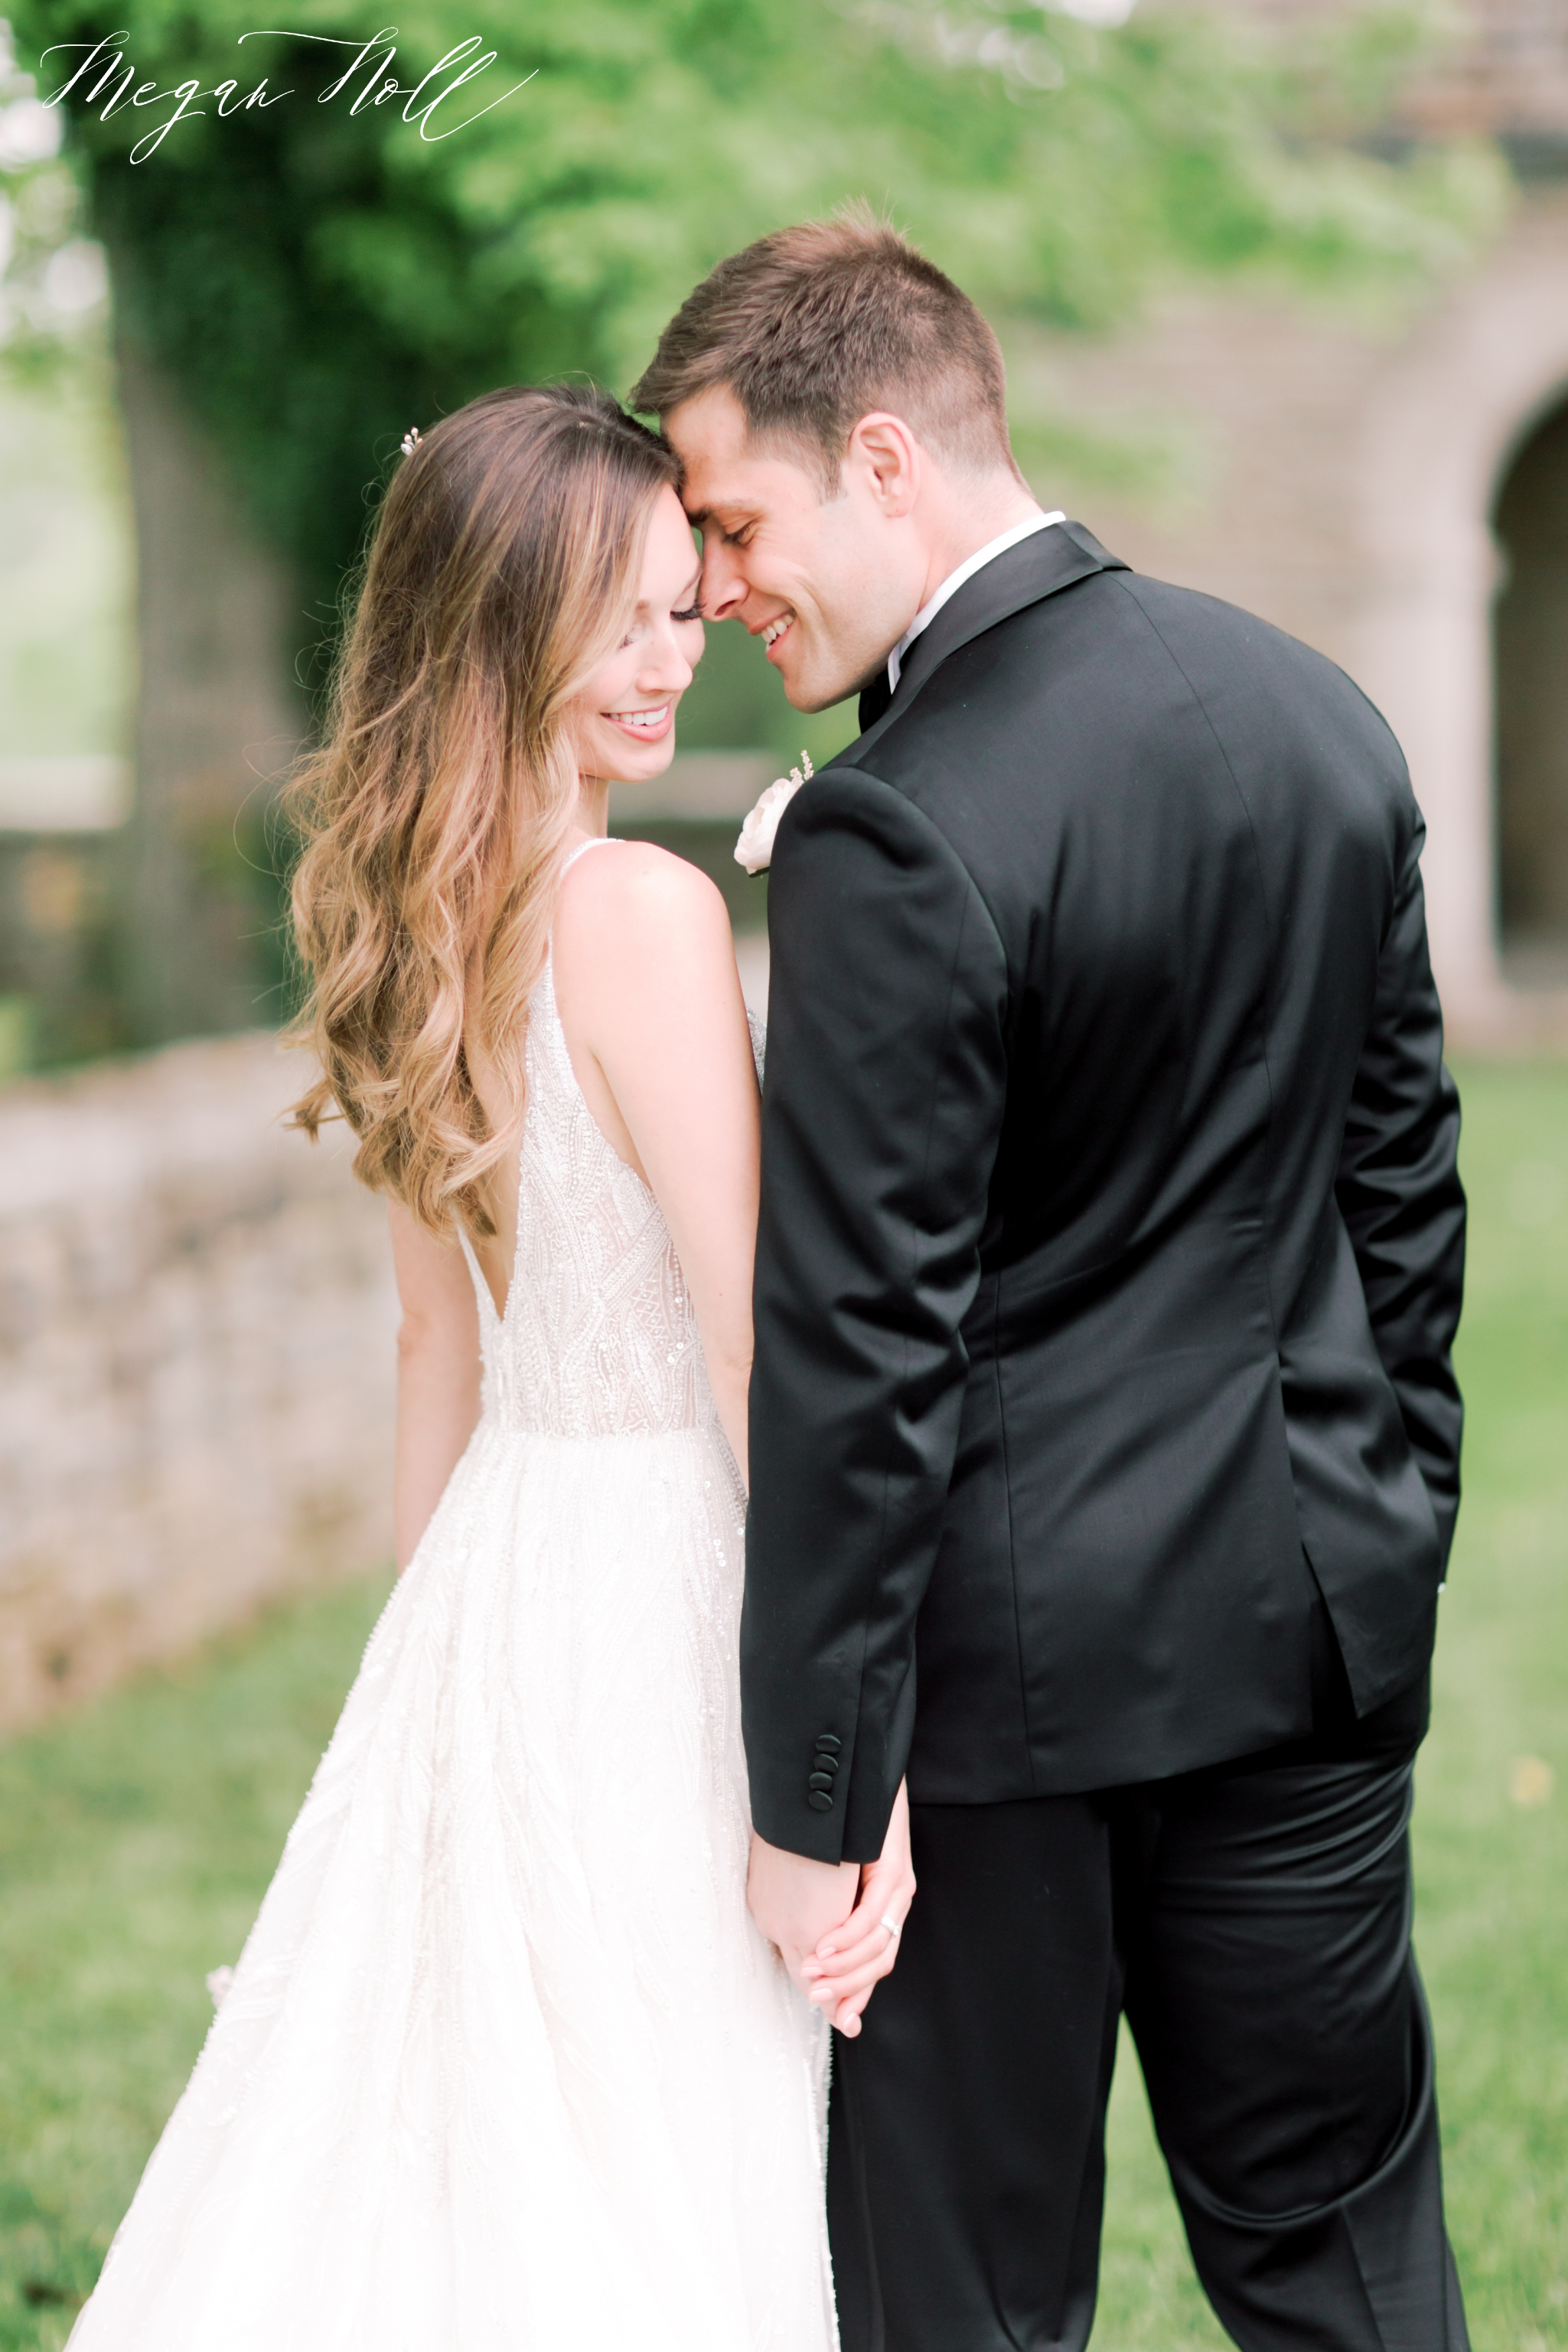 Romantic bride and groom portraits in Cincinnati